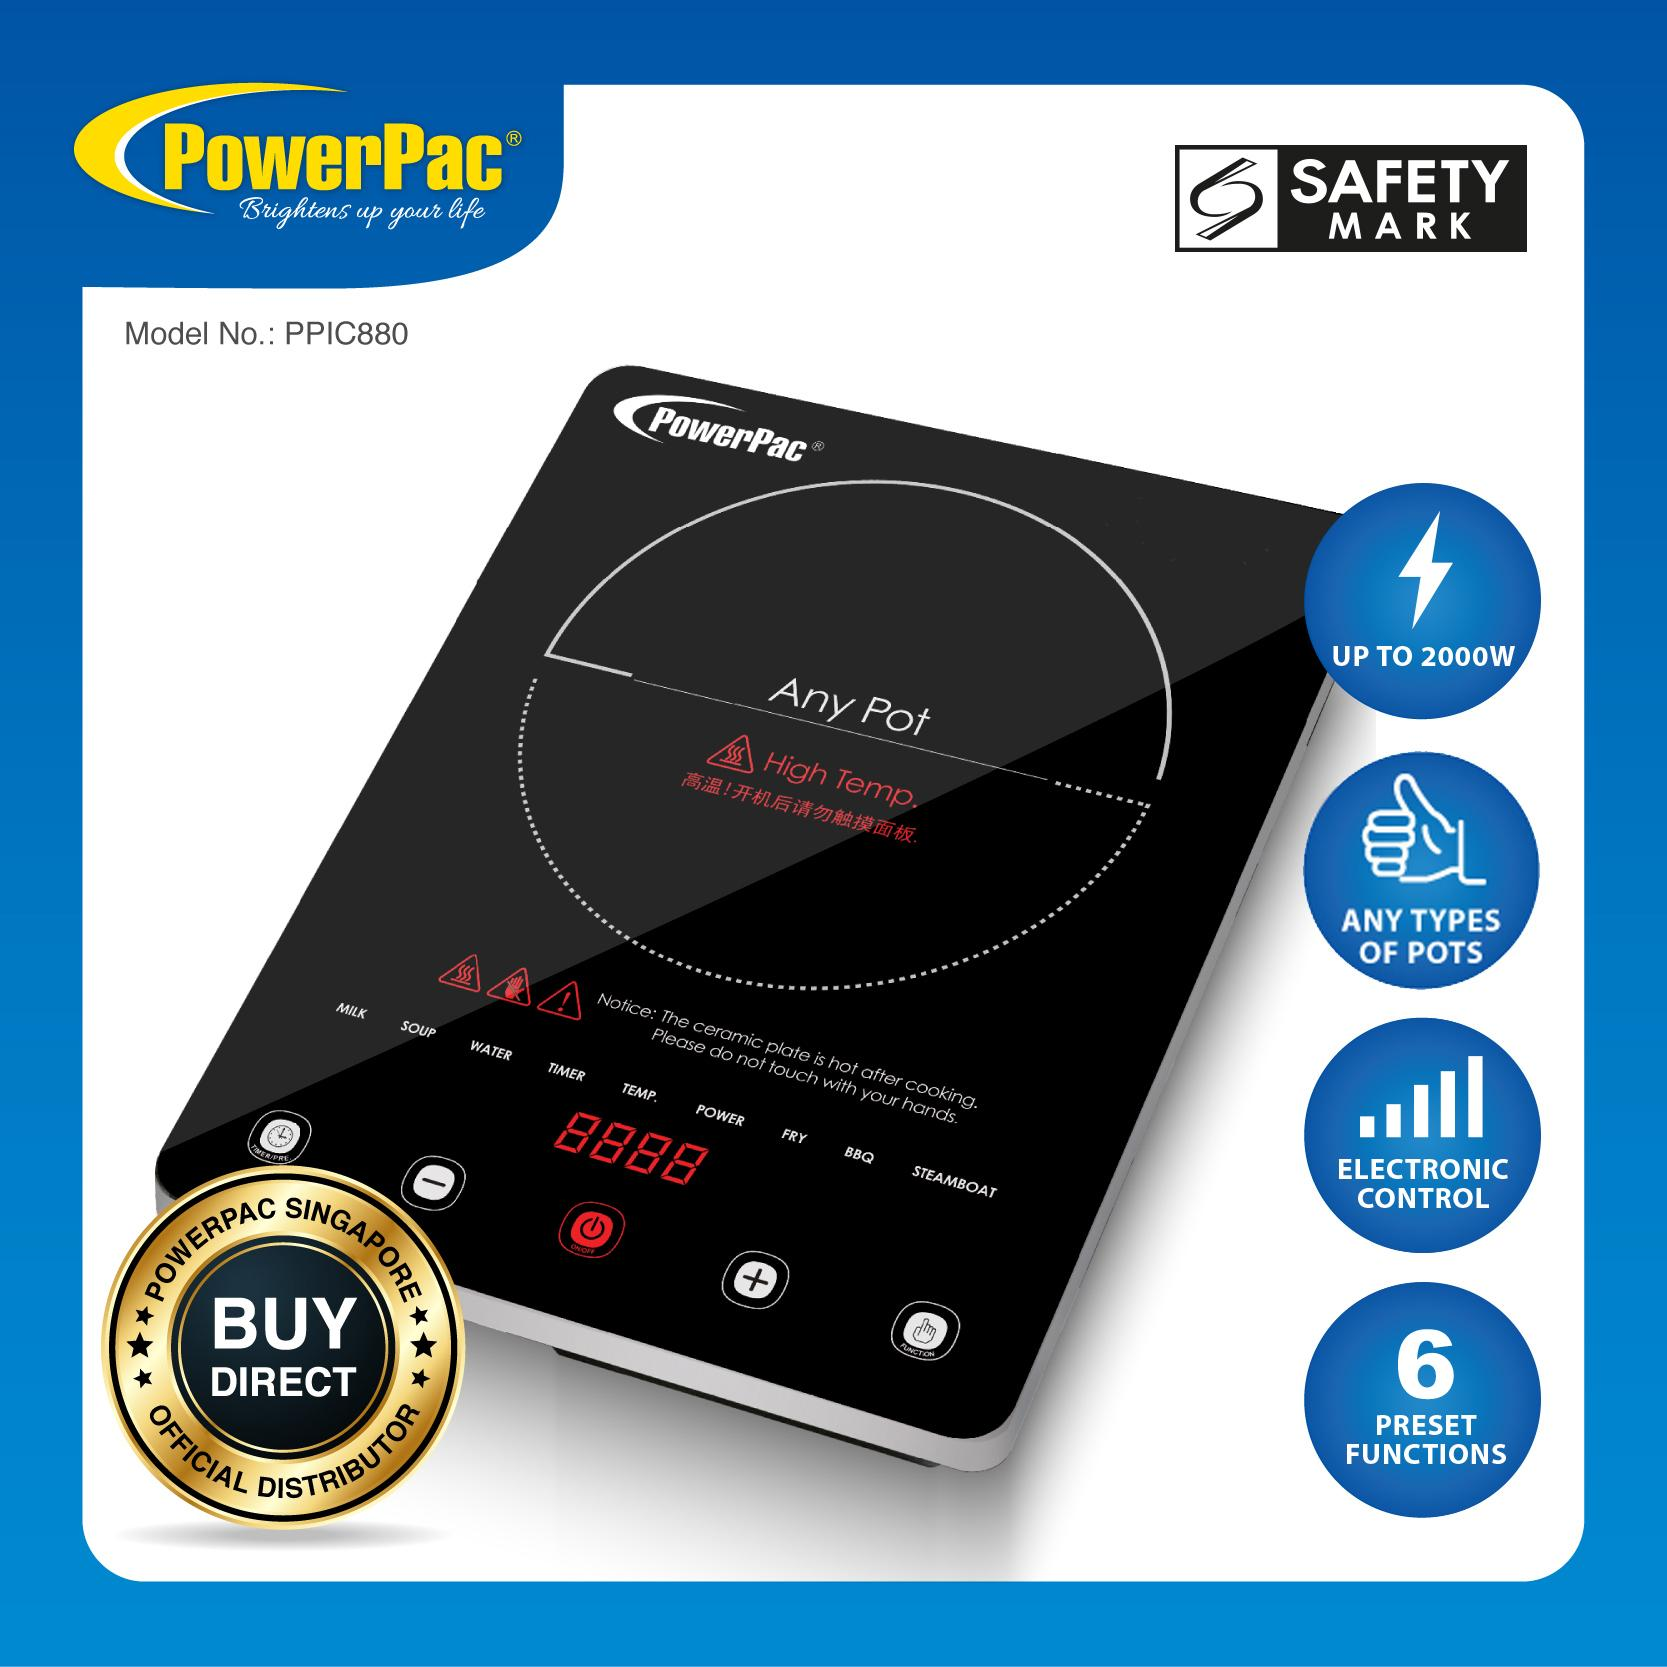 Powerpac Ceramic Cooker (any Pot) 2000 Watts (ppic880) By Powerpac.